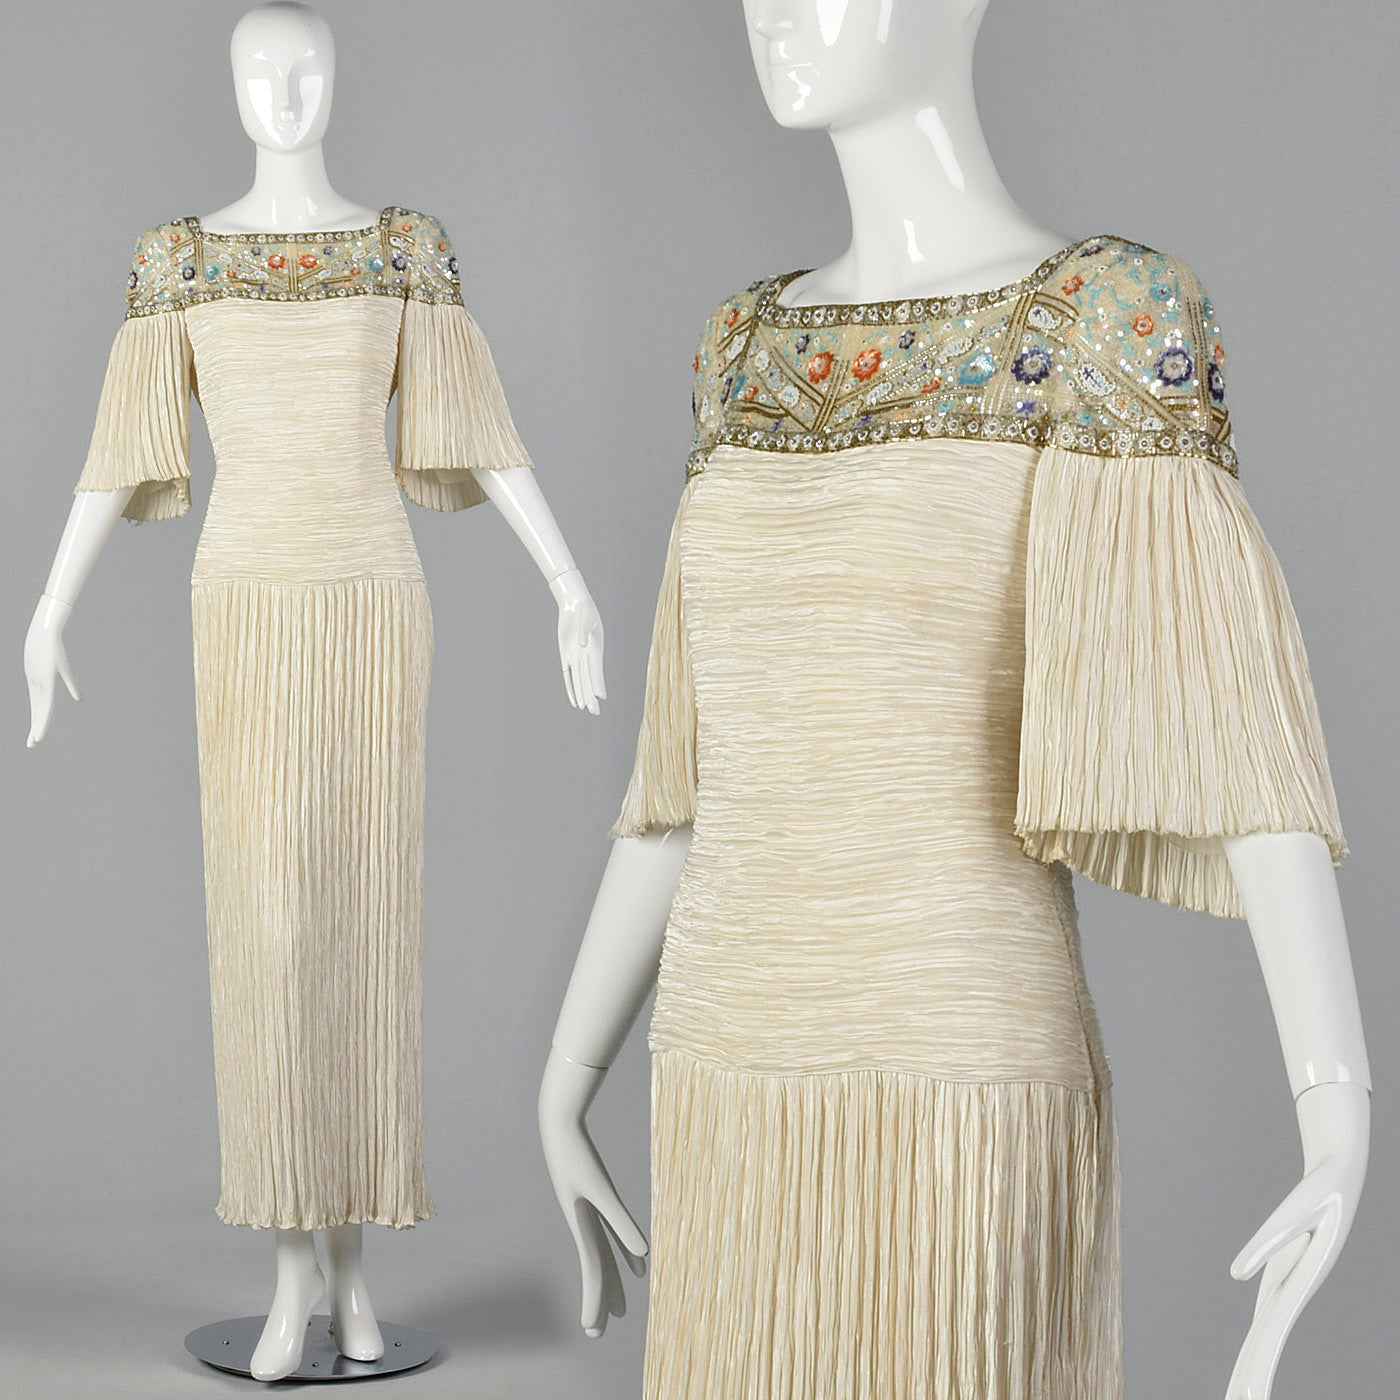 1980s Mary McFadden Dress with Beaded Neckline